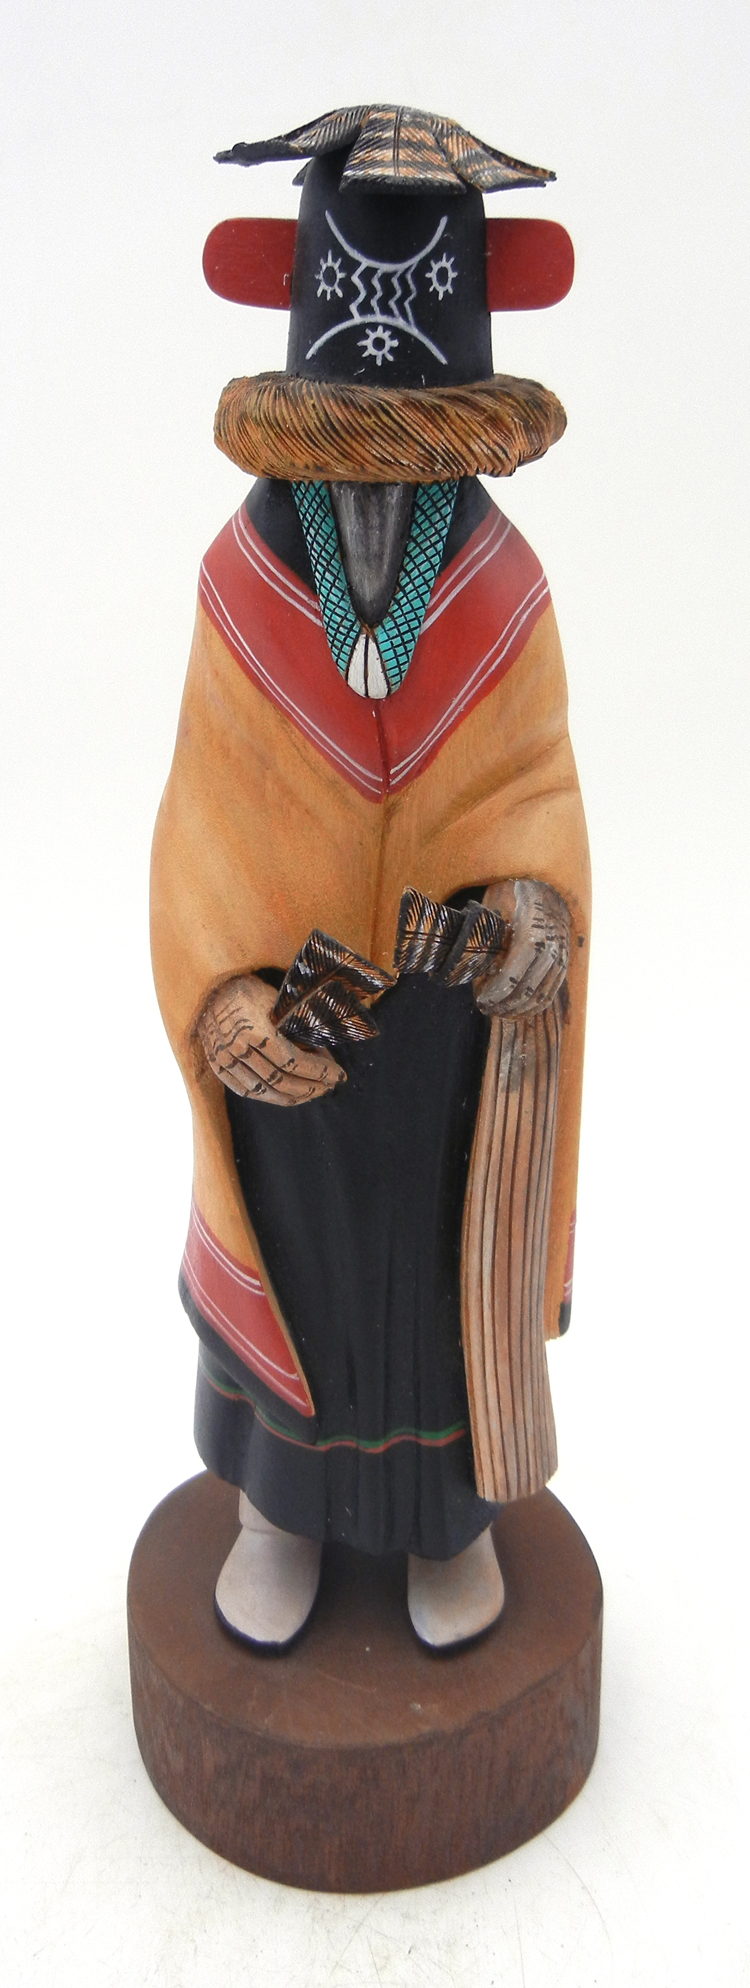 Hopi Zuni Maiden kachina doll by Wilmer Kaye